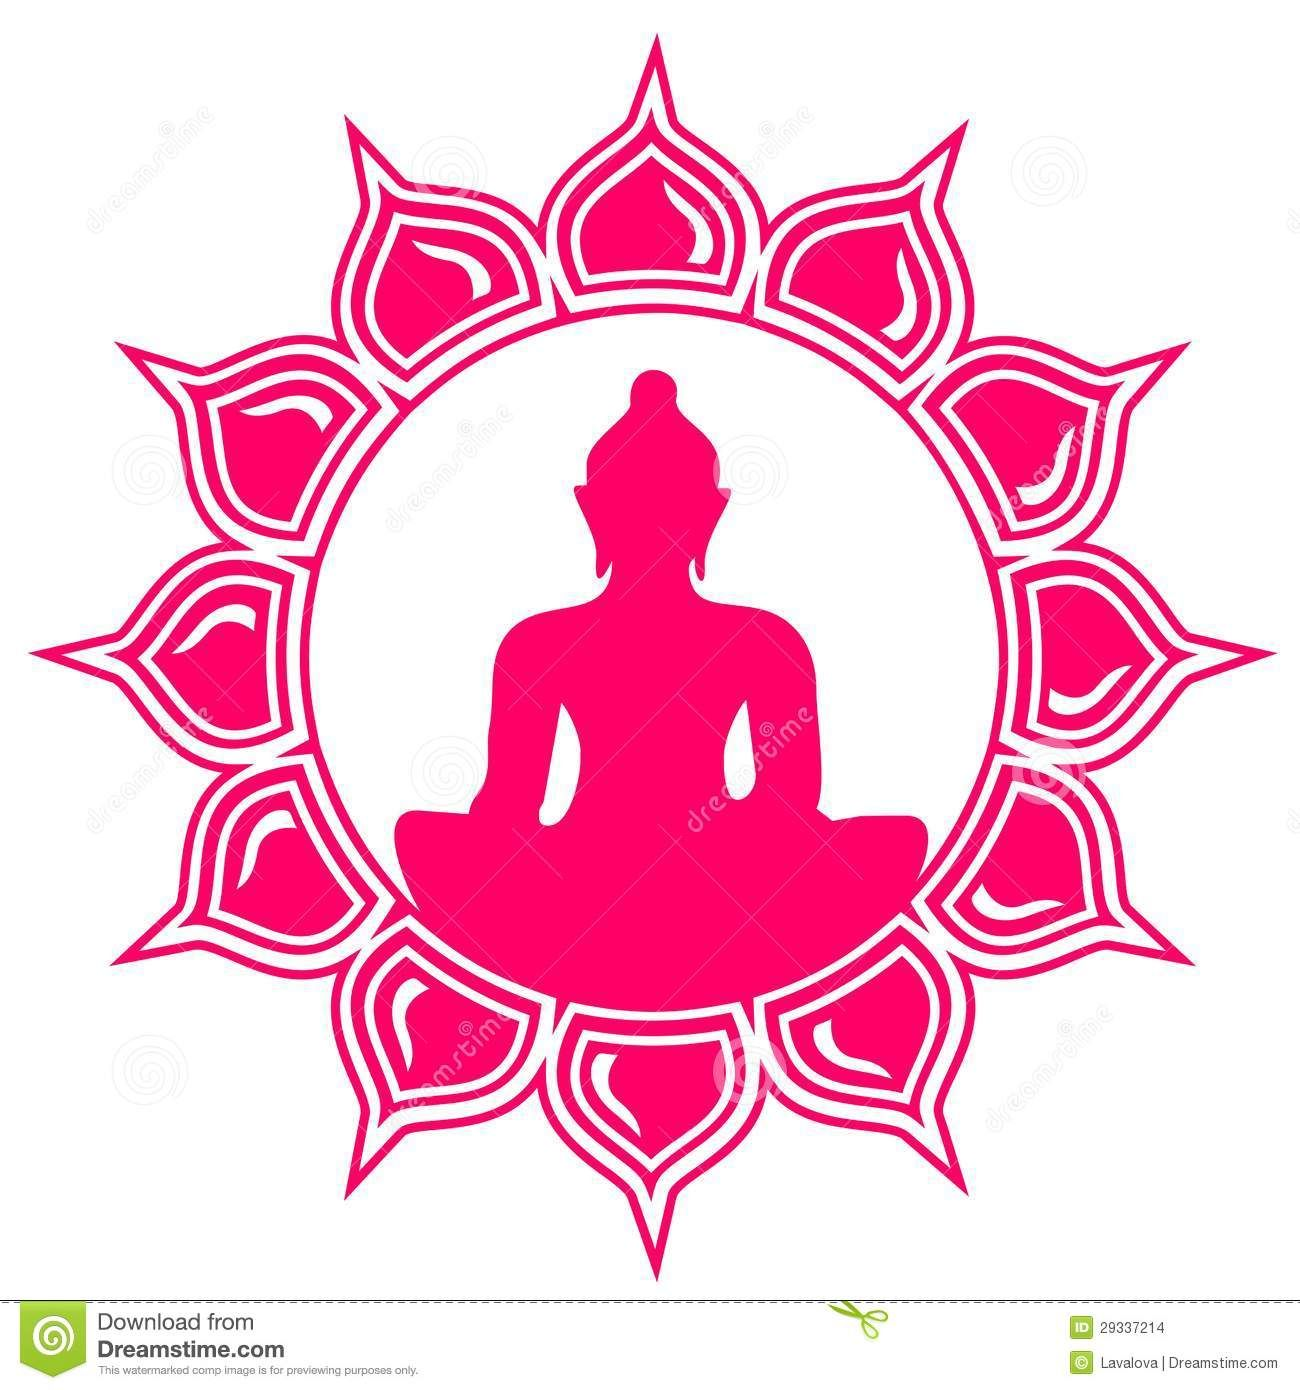 Lotus flowers graphics drawings google search lotus flowers lotus flowers graphics drawings google search mightylinksfo